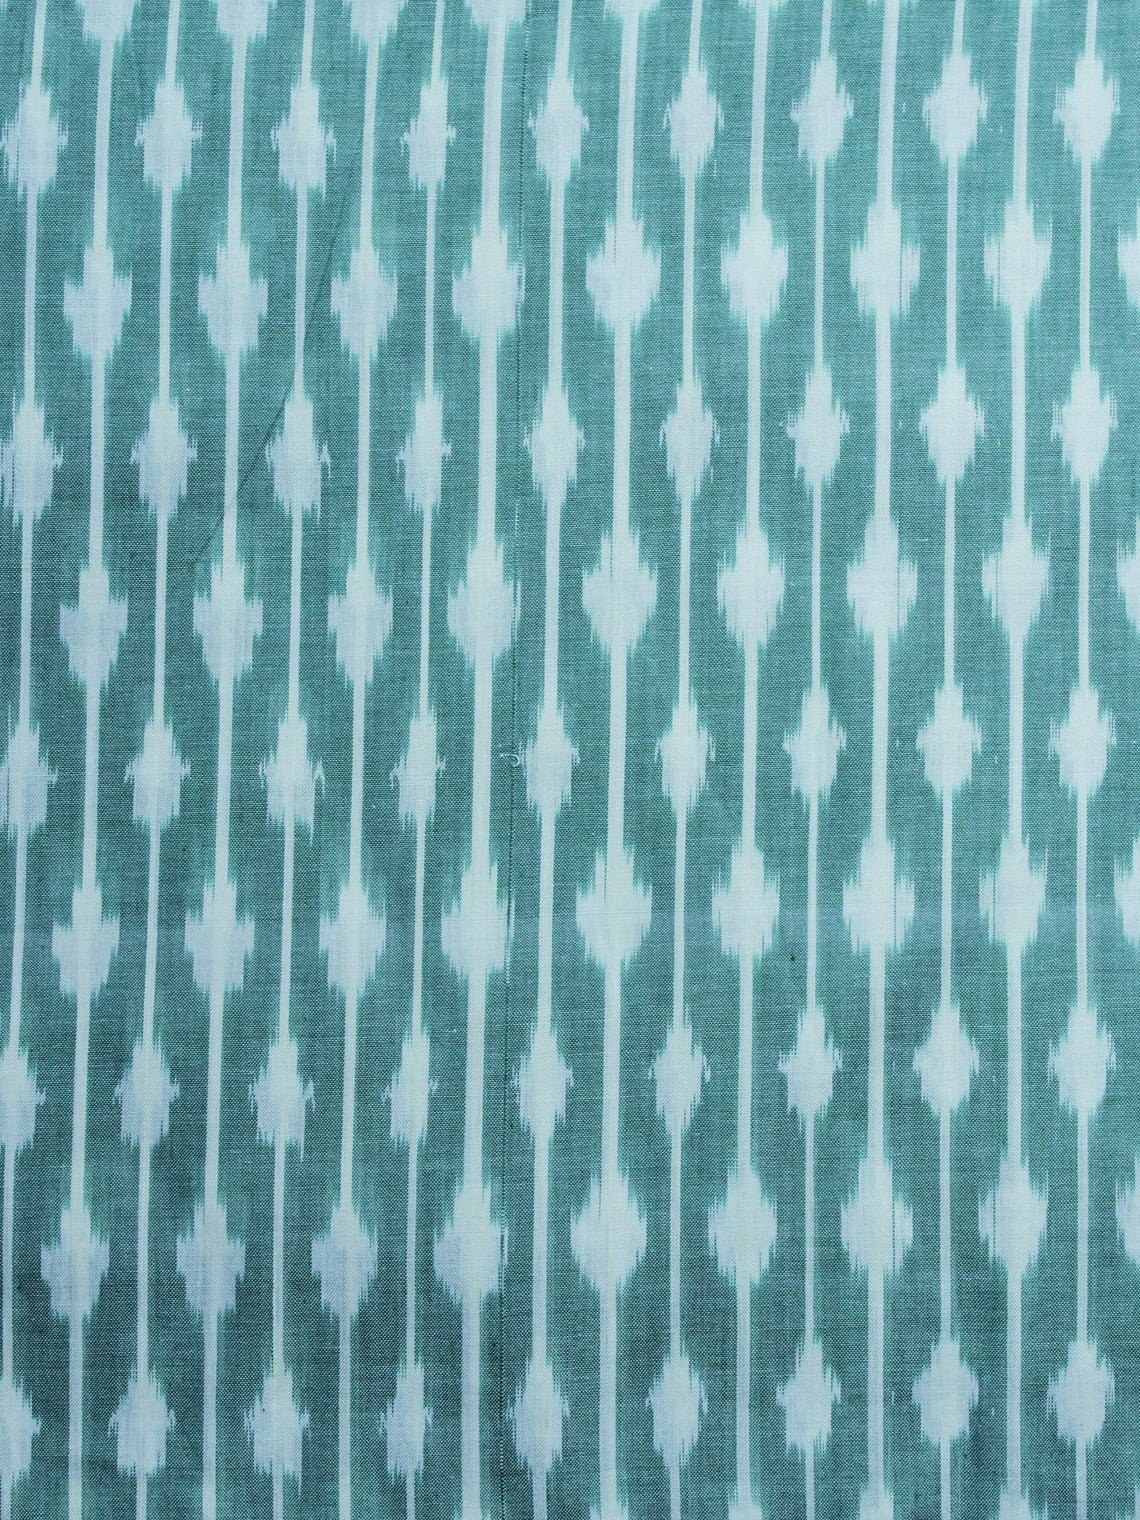 Teal Green Ivory Pochampally Hand Weaved Ikat Mercerised Cotton Fabric Per Meter - F002F1028